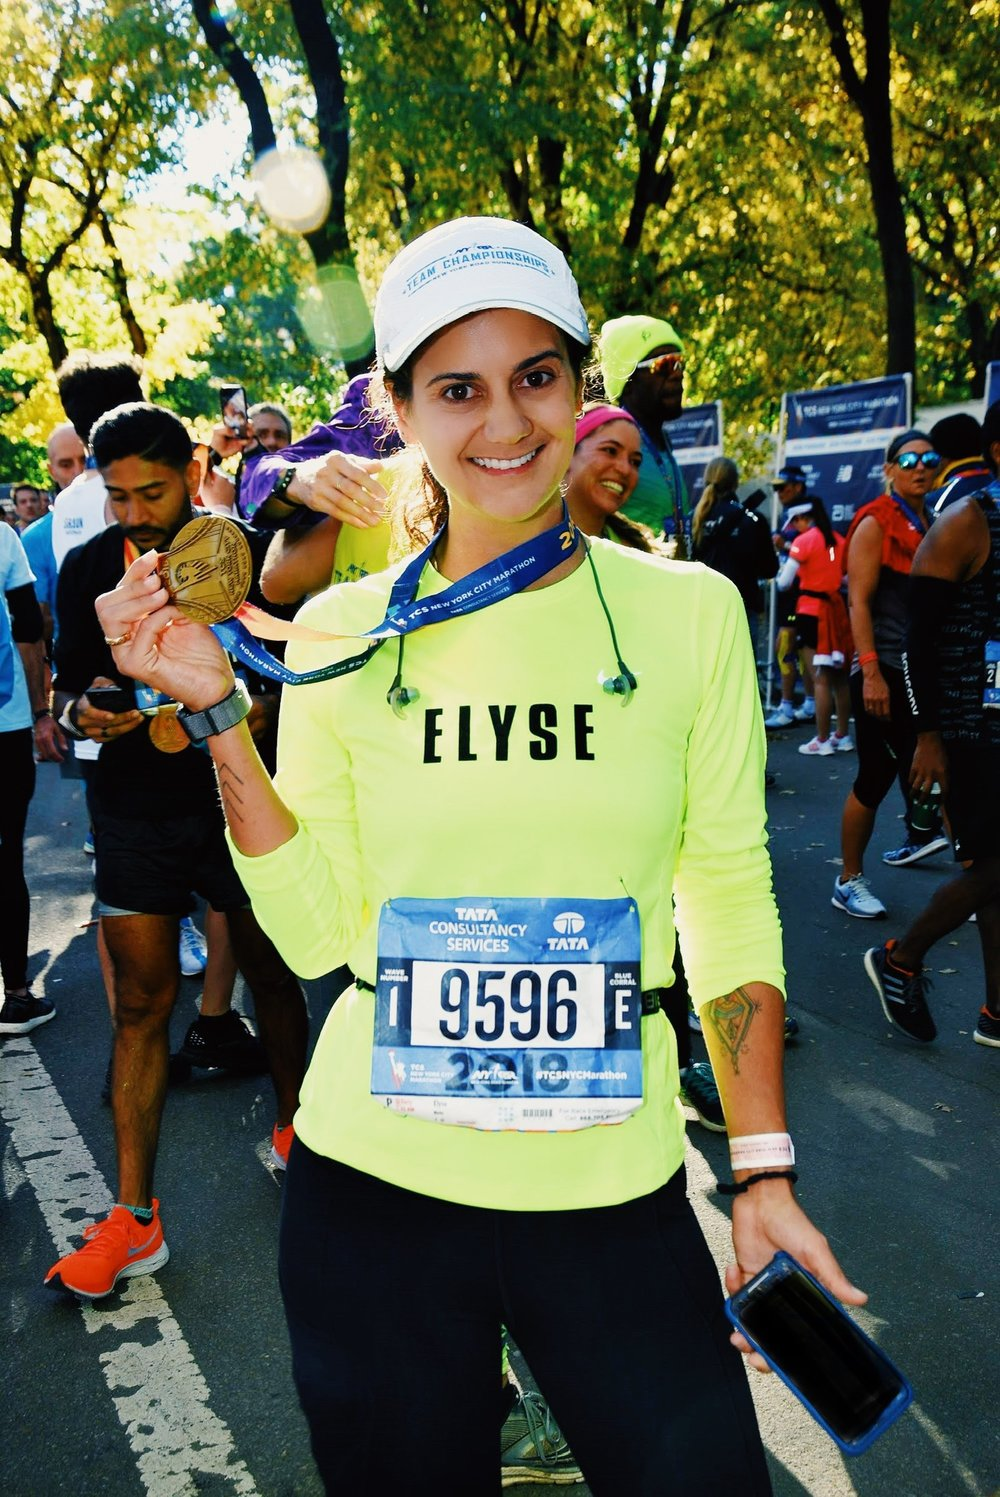 Speaking of being ready, Elyse at the finish line of the TCS New York City Marathon, November 4, 2018.